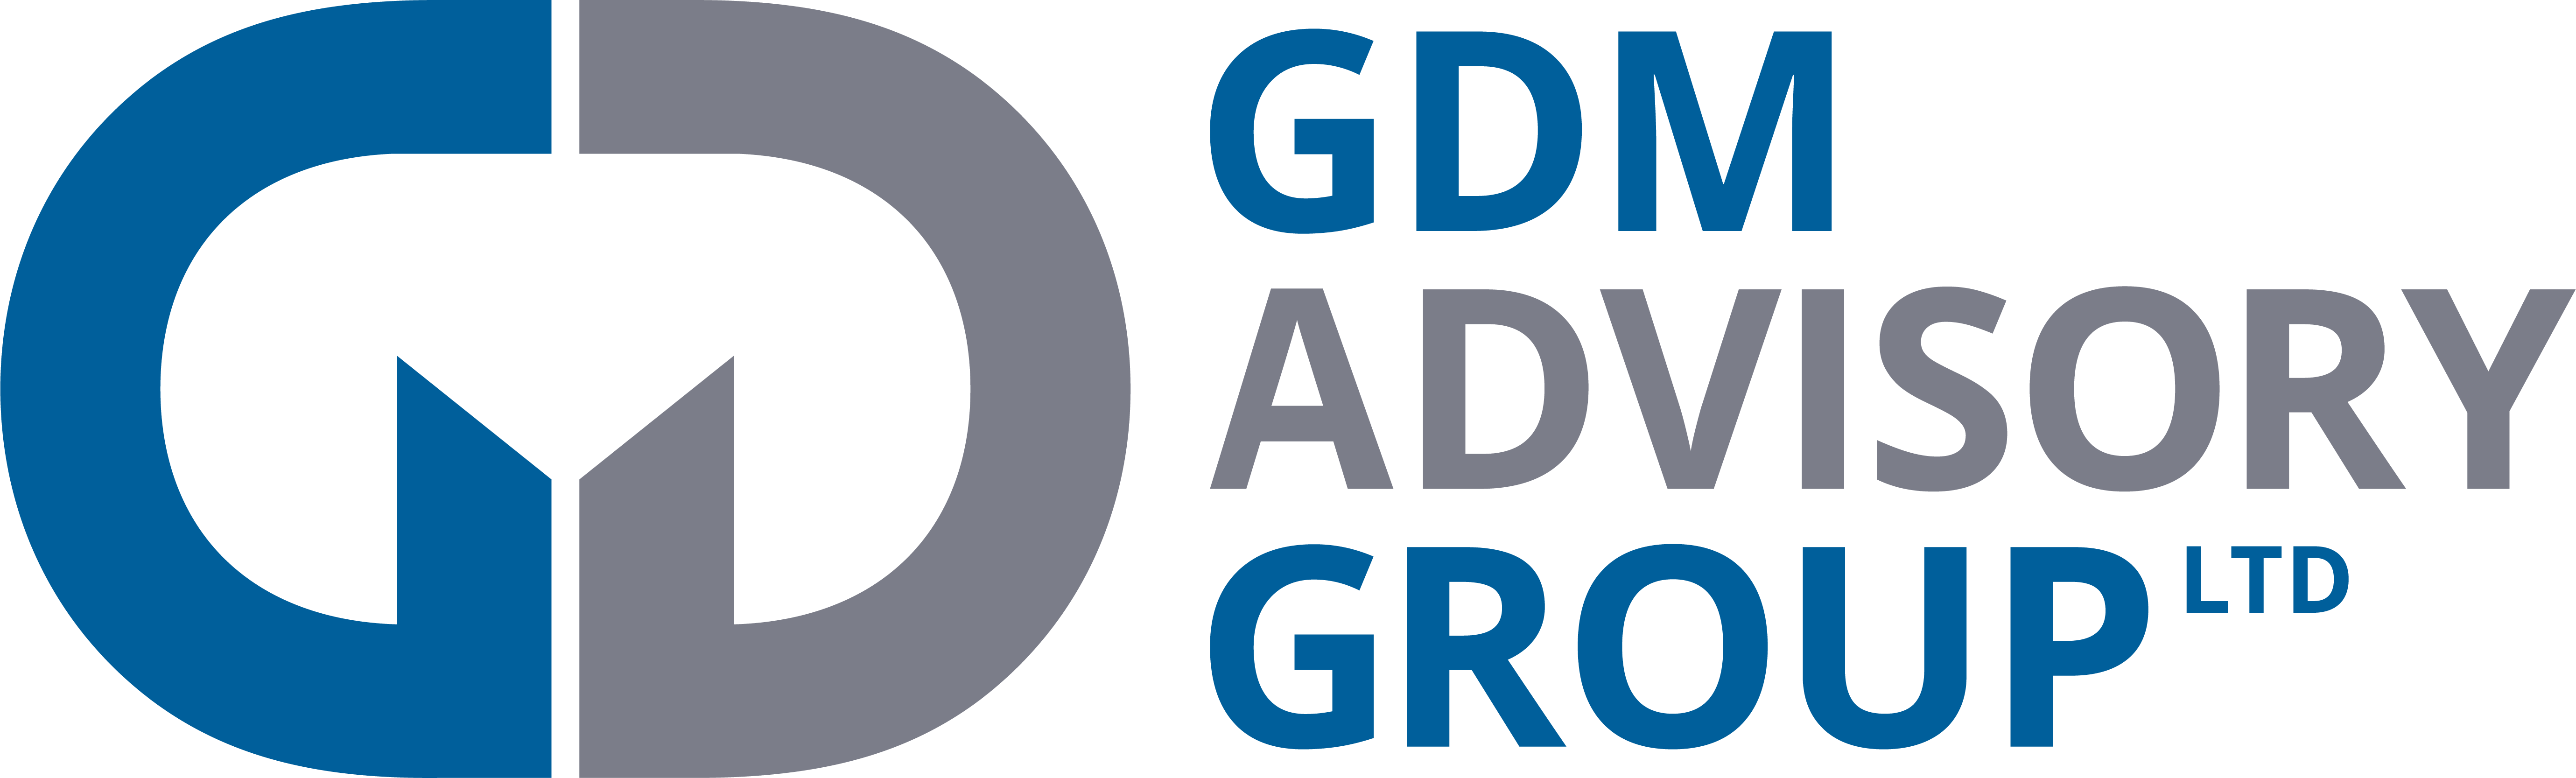 GDM Advisory Group, Ltd.